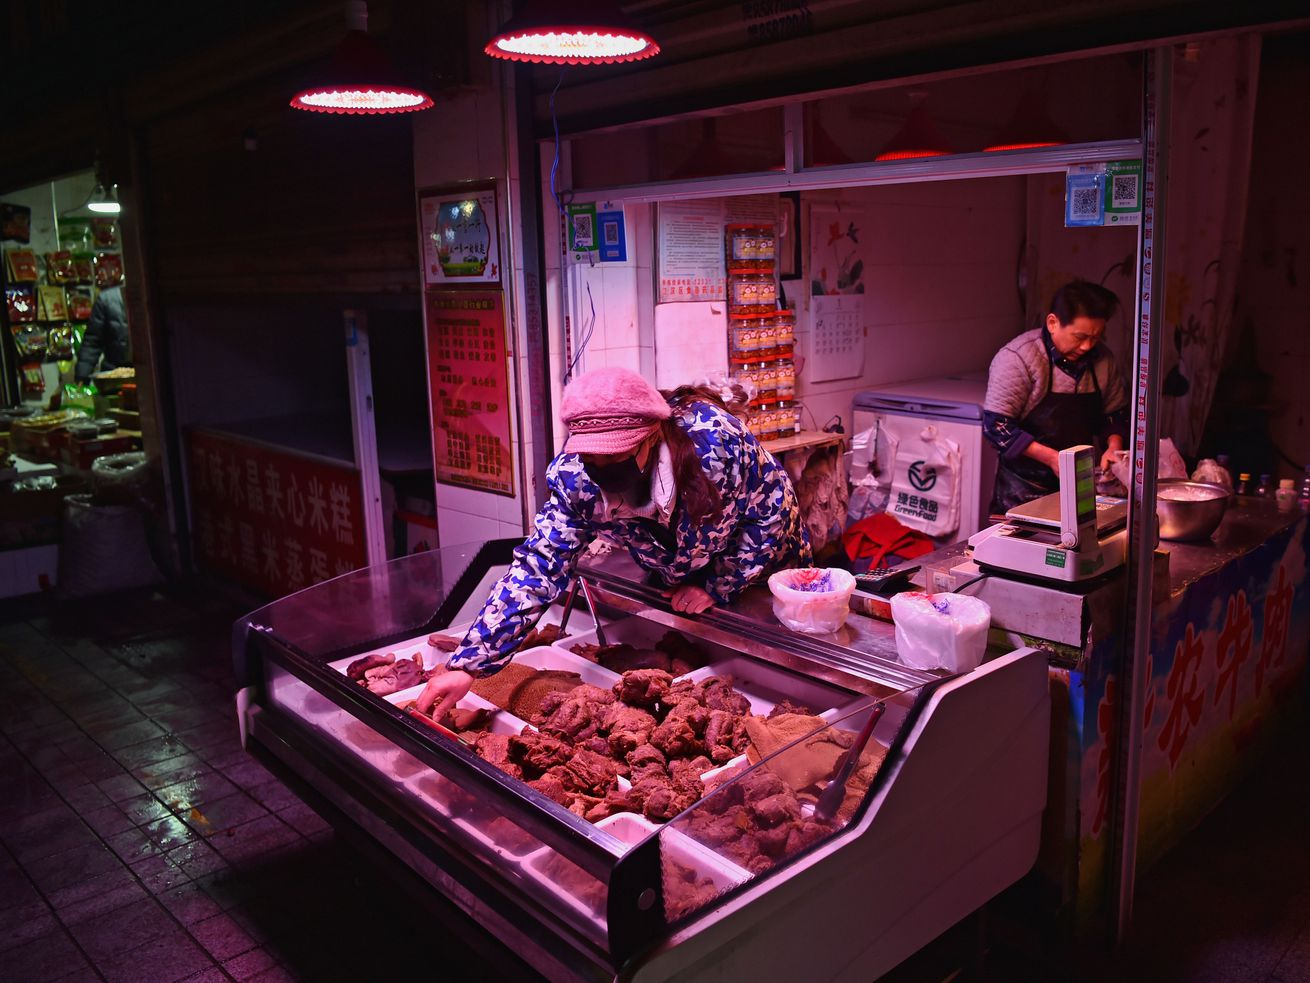 Vendors, wearing face masks, selling meat in a dimly lit market.